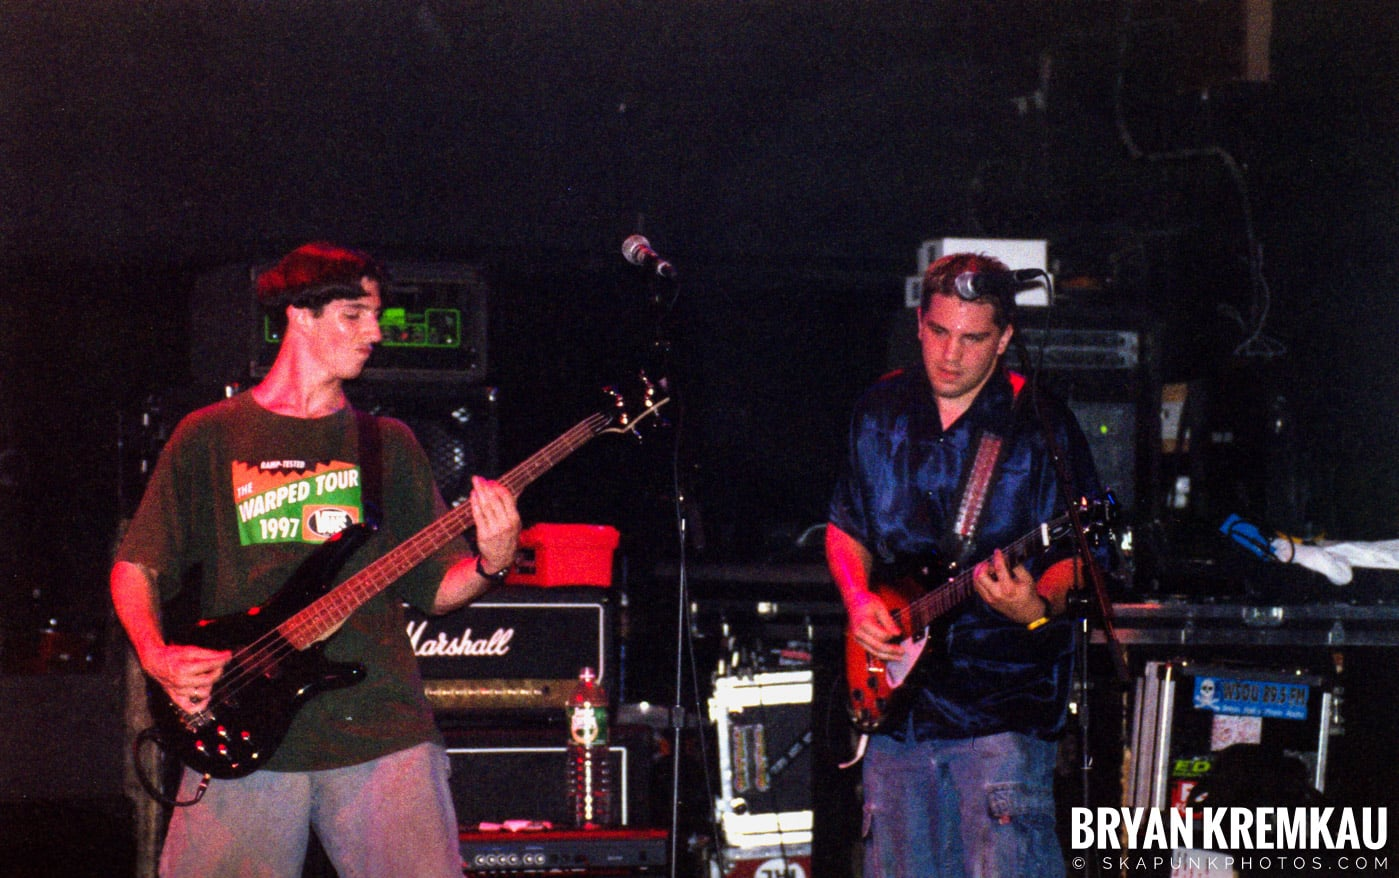 What's Your Problem, Brian @ The Chance, Poughkeepsie, NY - 8.4.00 (5)